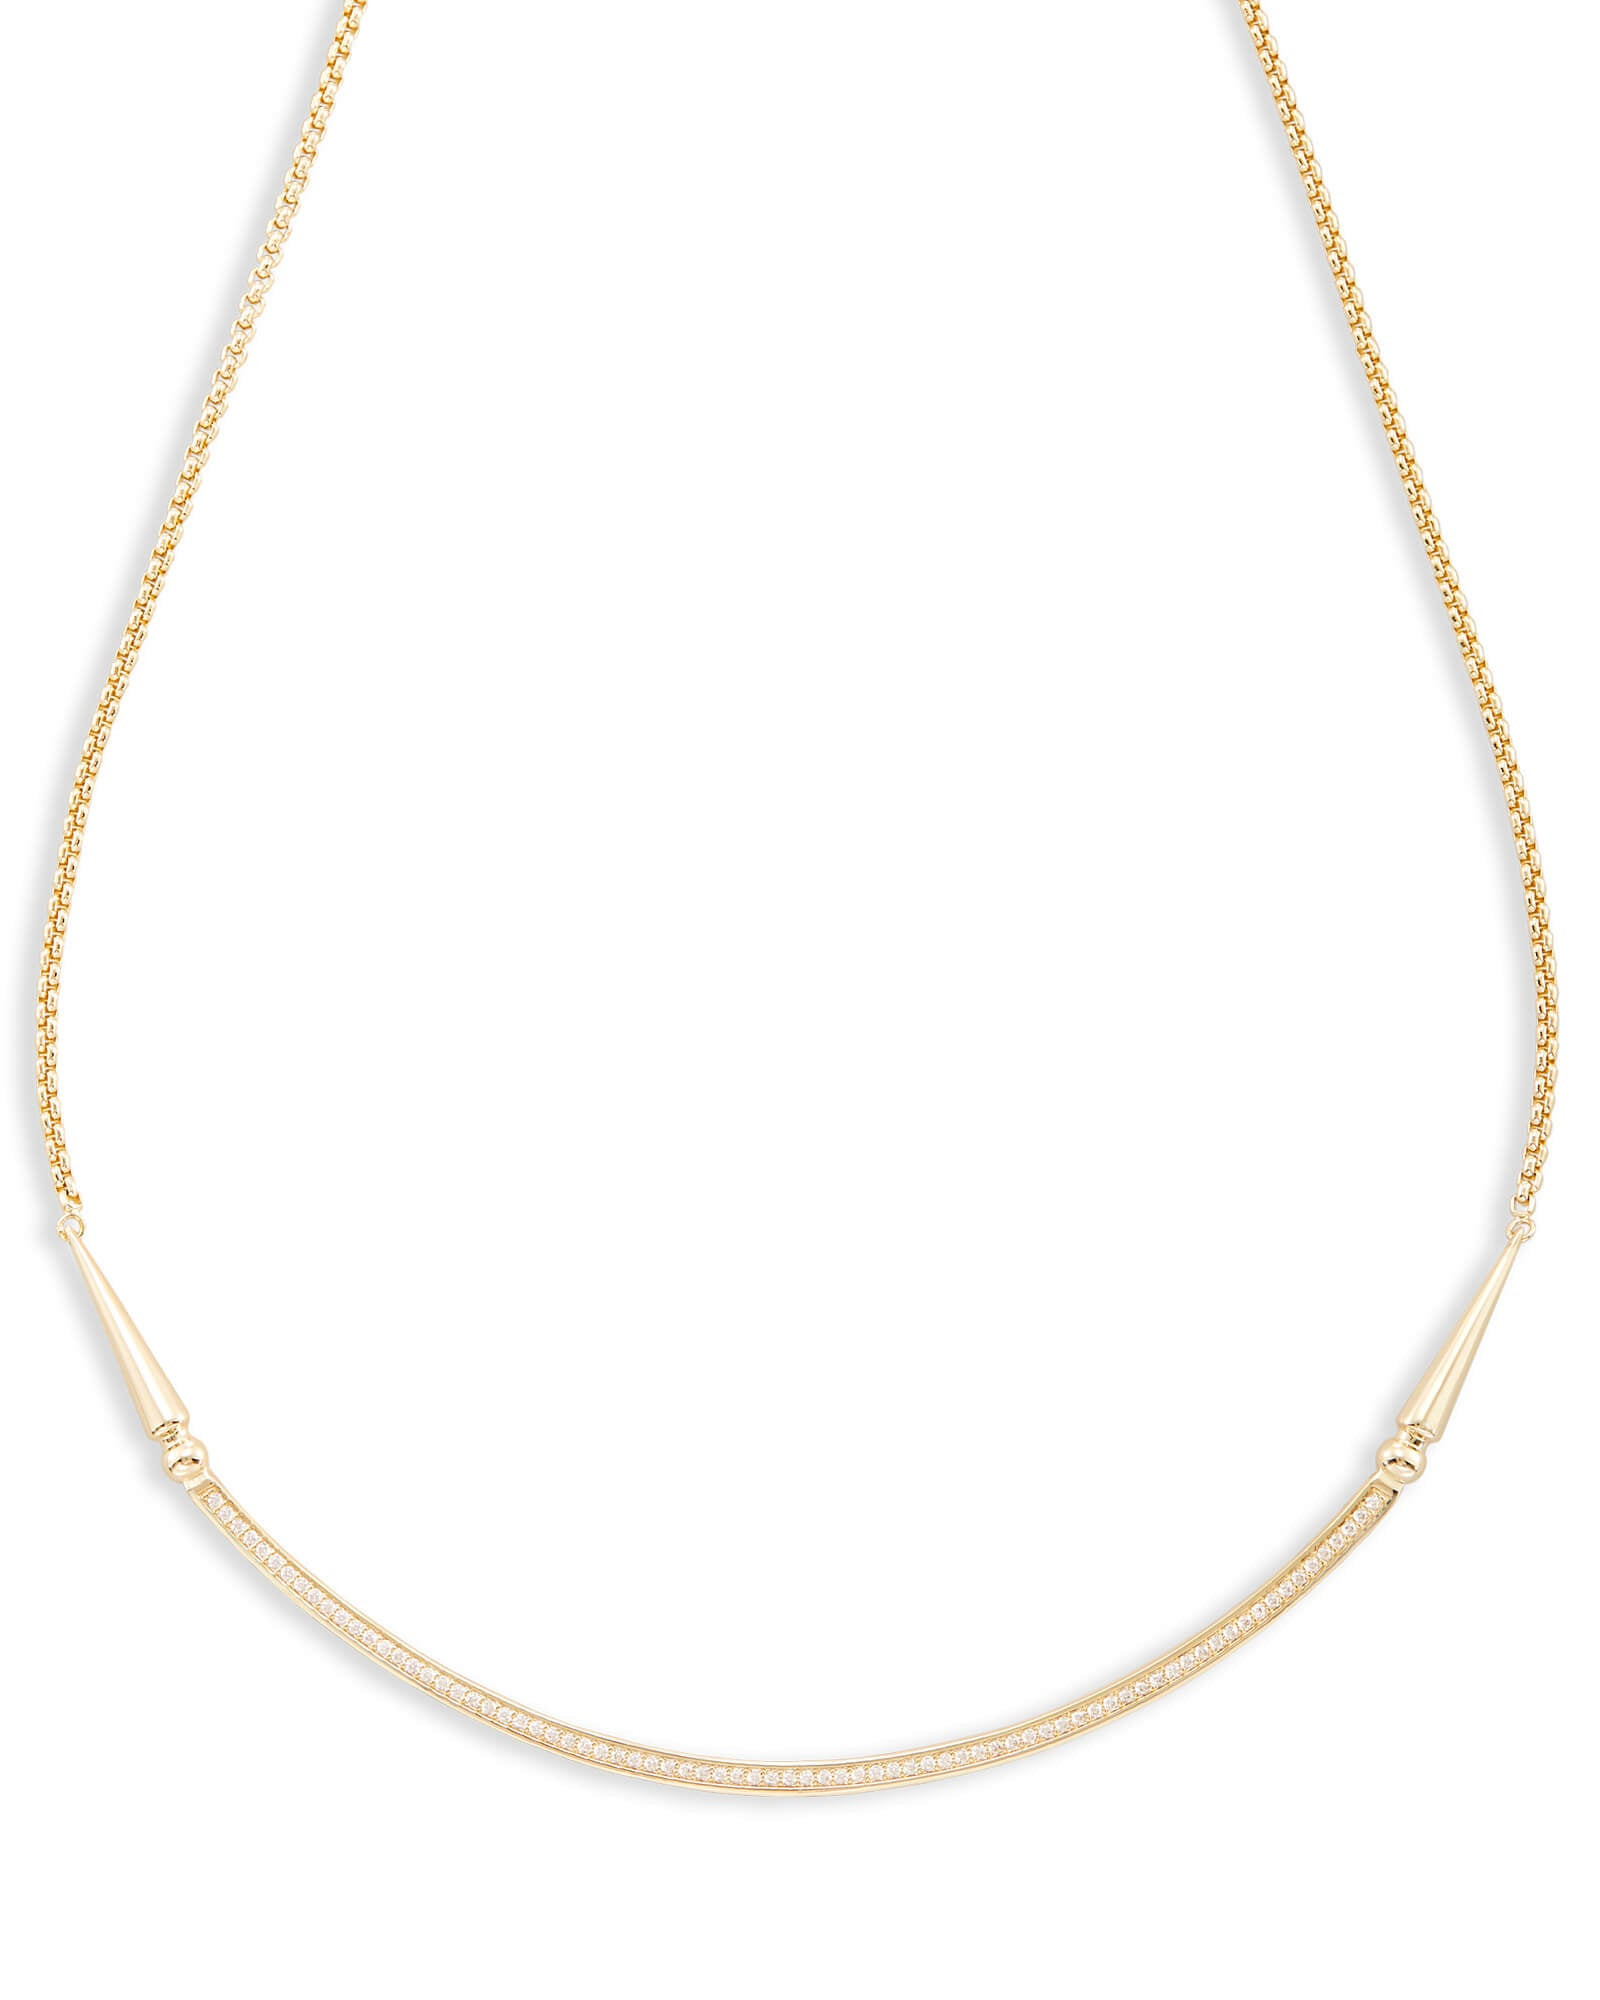 Kendra Scott Scottie Necklace - Gabrielle's Biloxi